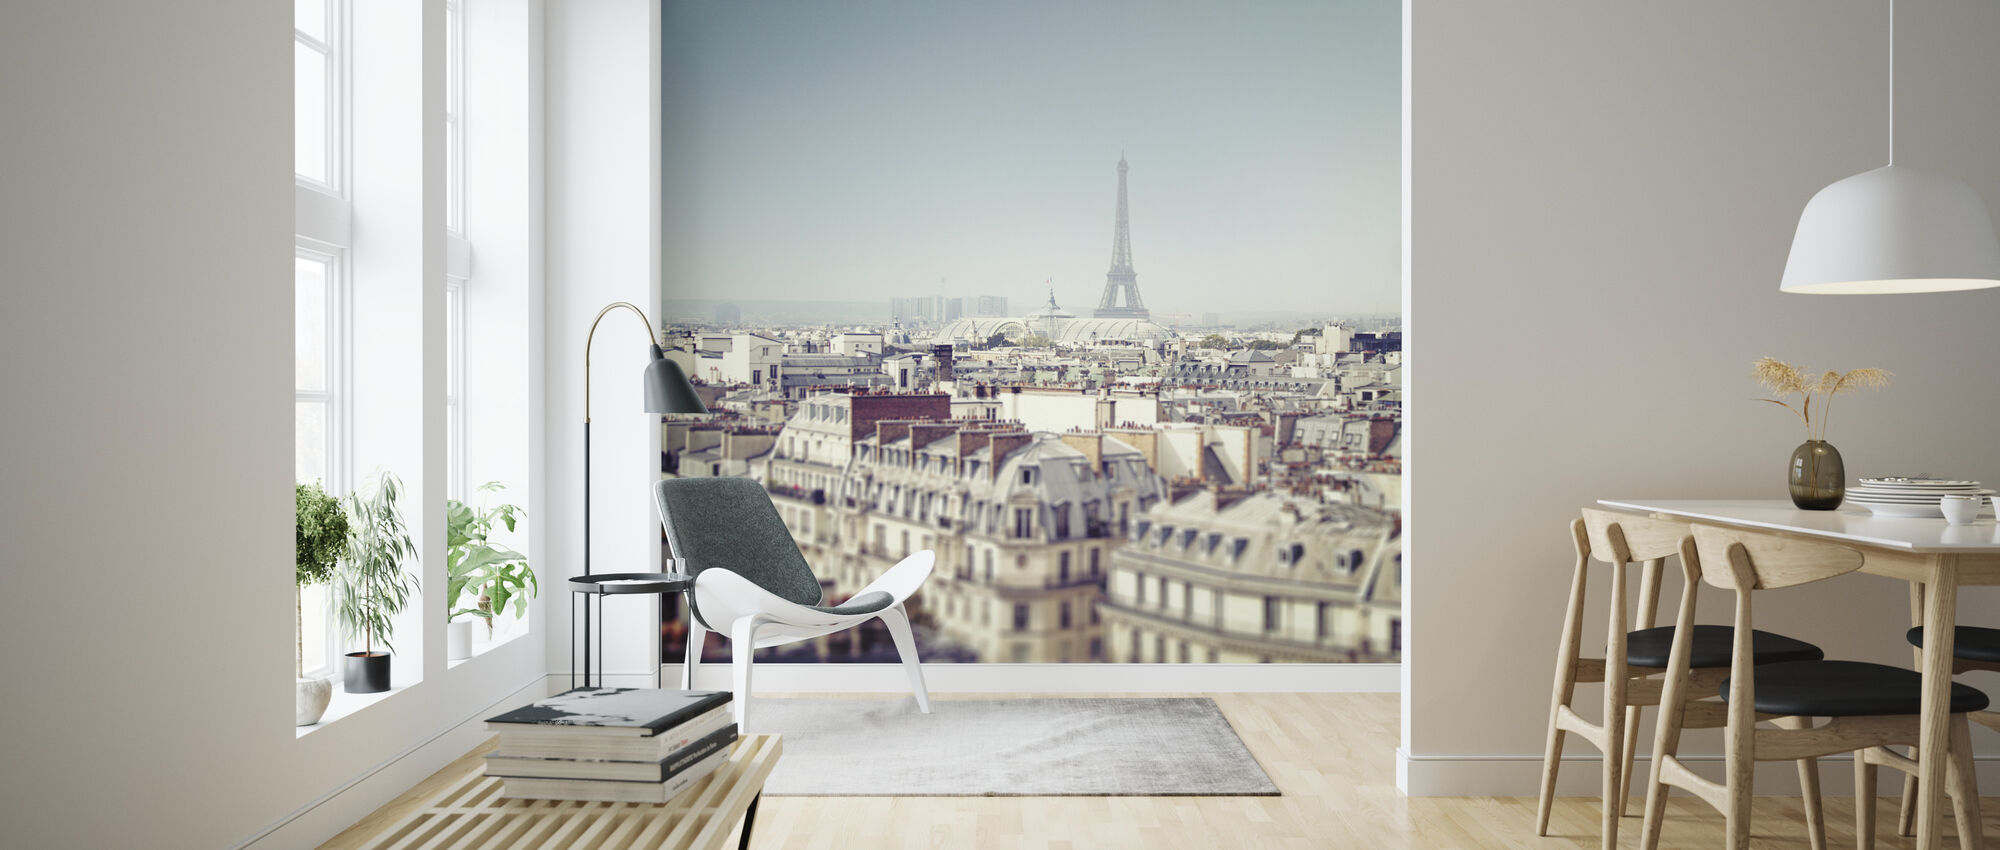 Paris Moments VI - Wallpaper - Living Room